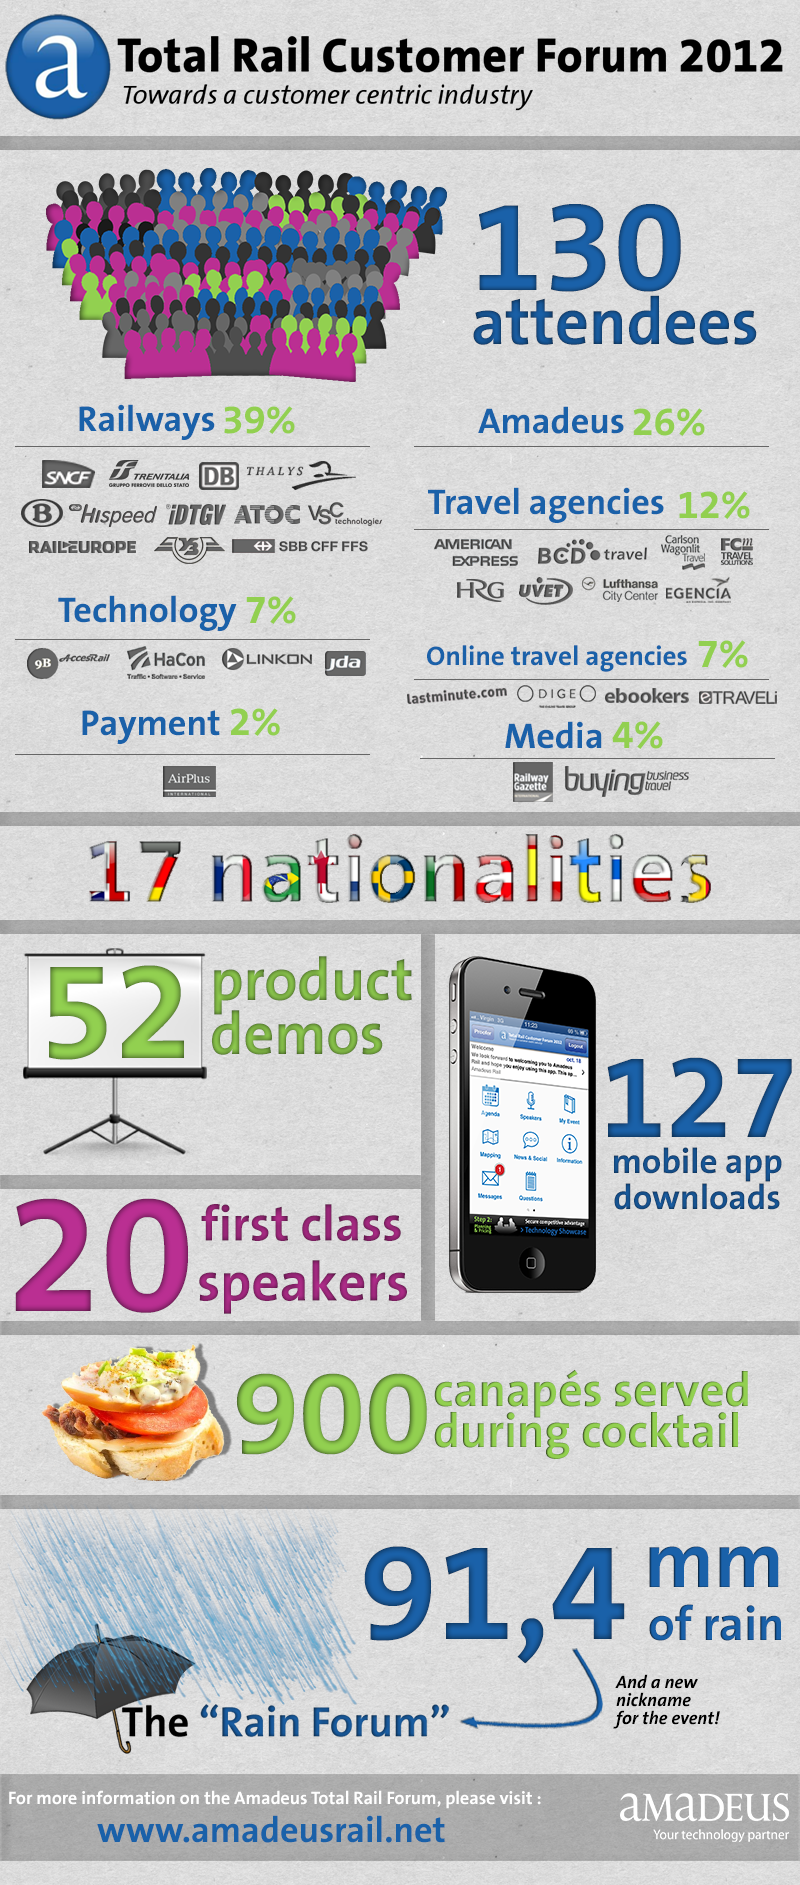 Amadeus Total Rail Forum 2012 Infographic